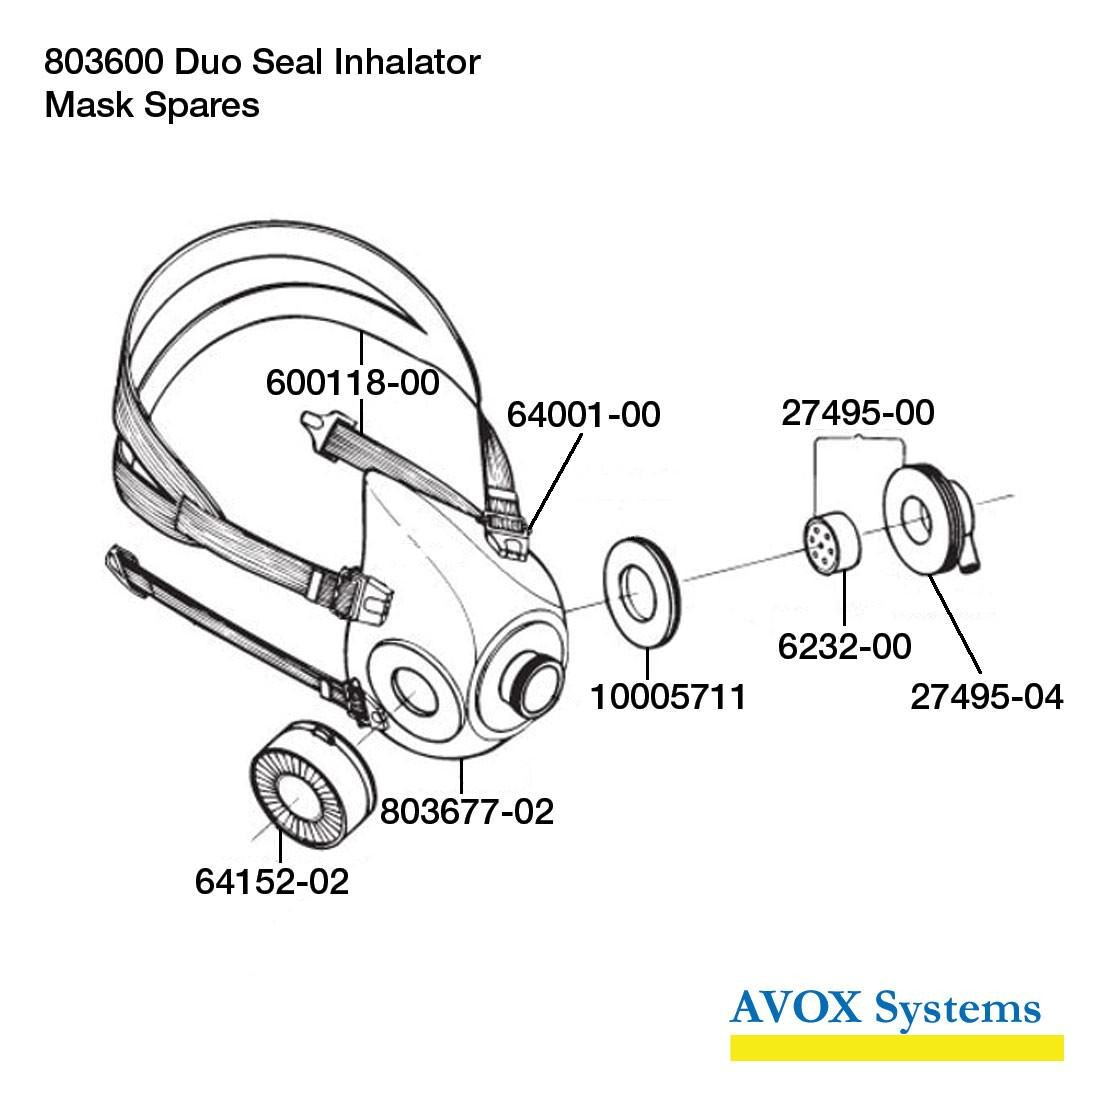 803600 Duo Seal Inhalator Mask - Spares